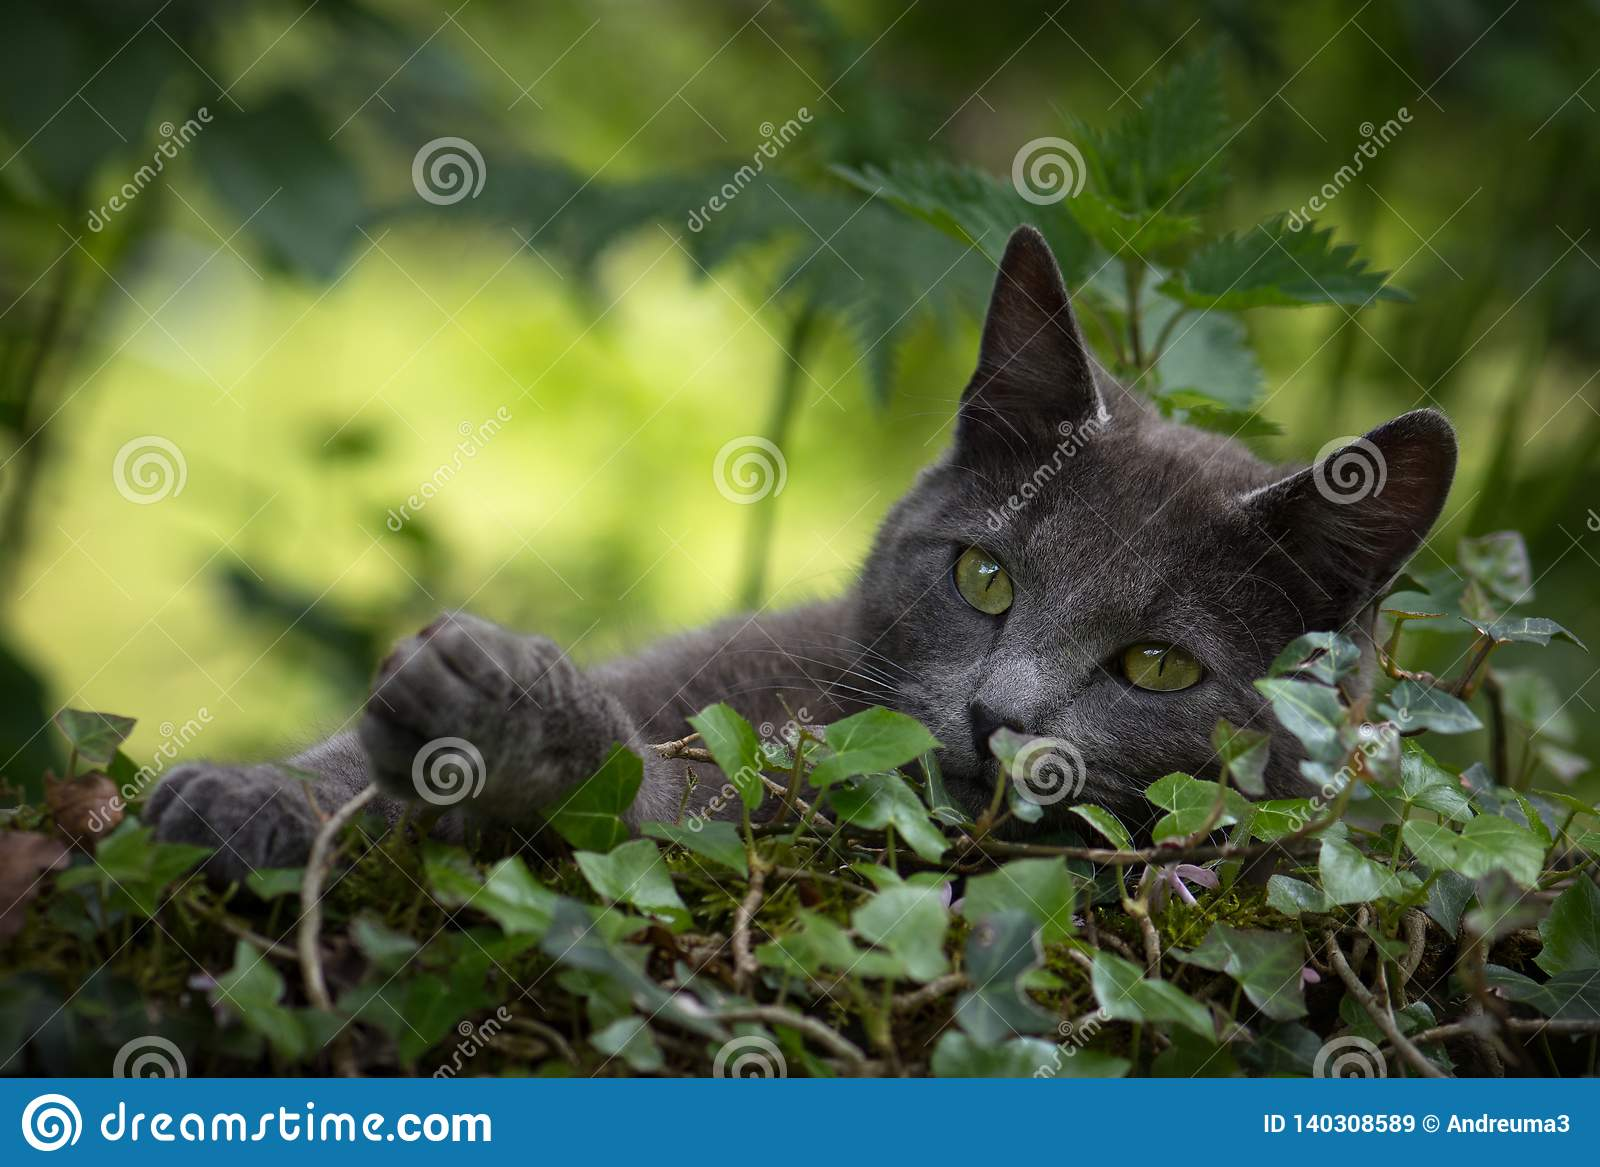 Gray cat in the nature